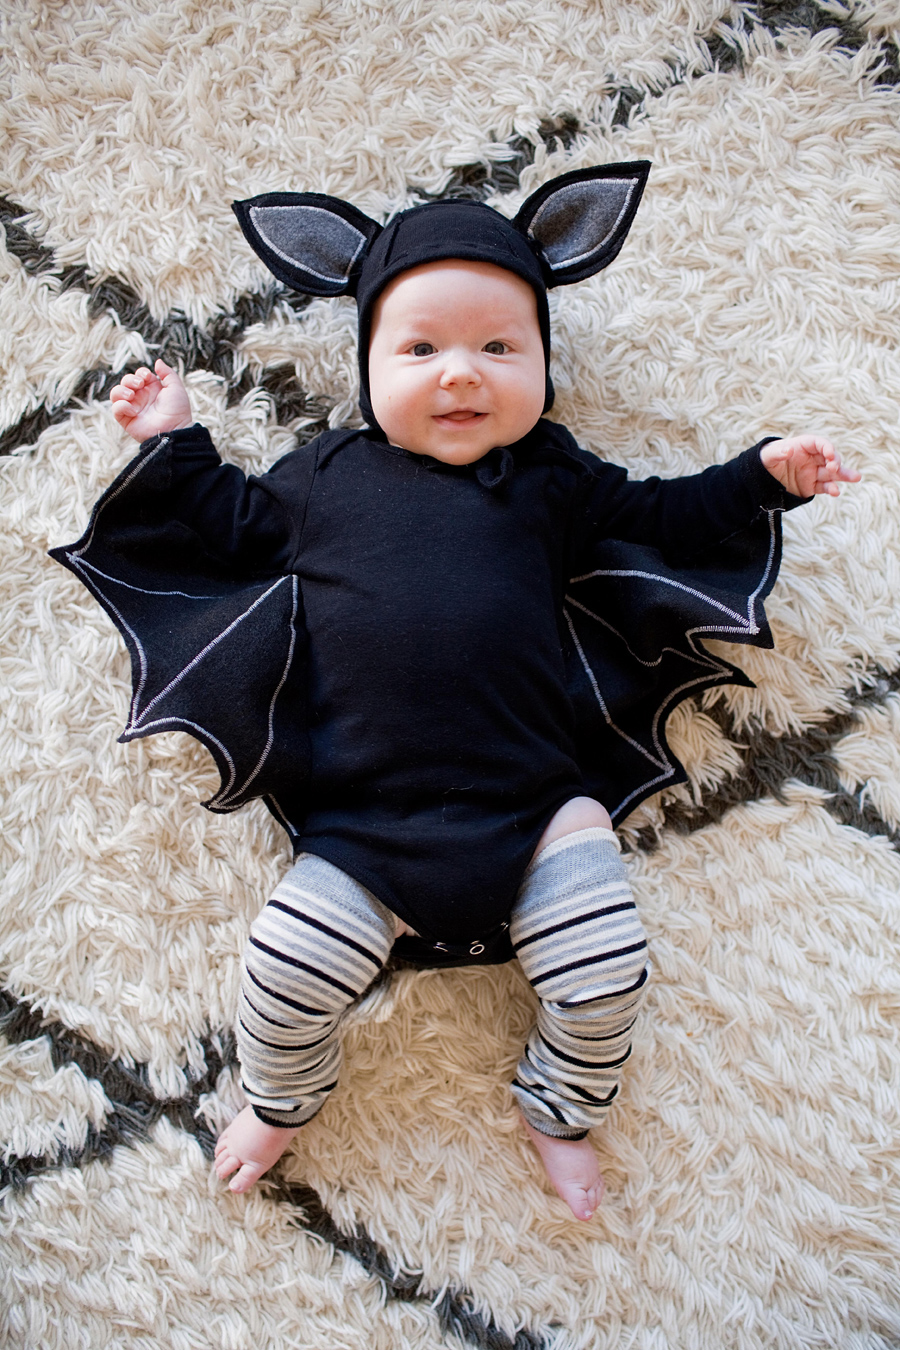 Baby bat costume  sc 1 st  DIYS.com & Check Out These 50 Creative Baby Costumes For All Kinds of Events!